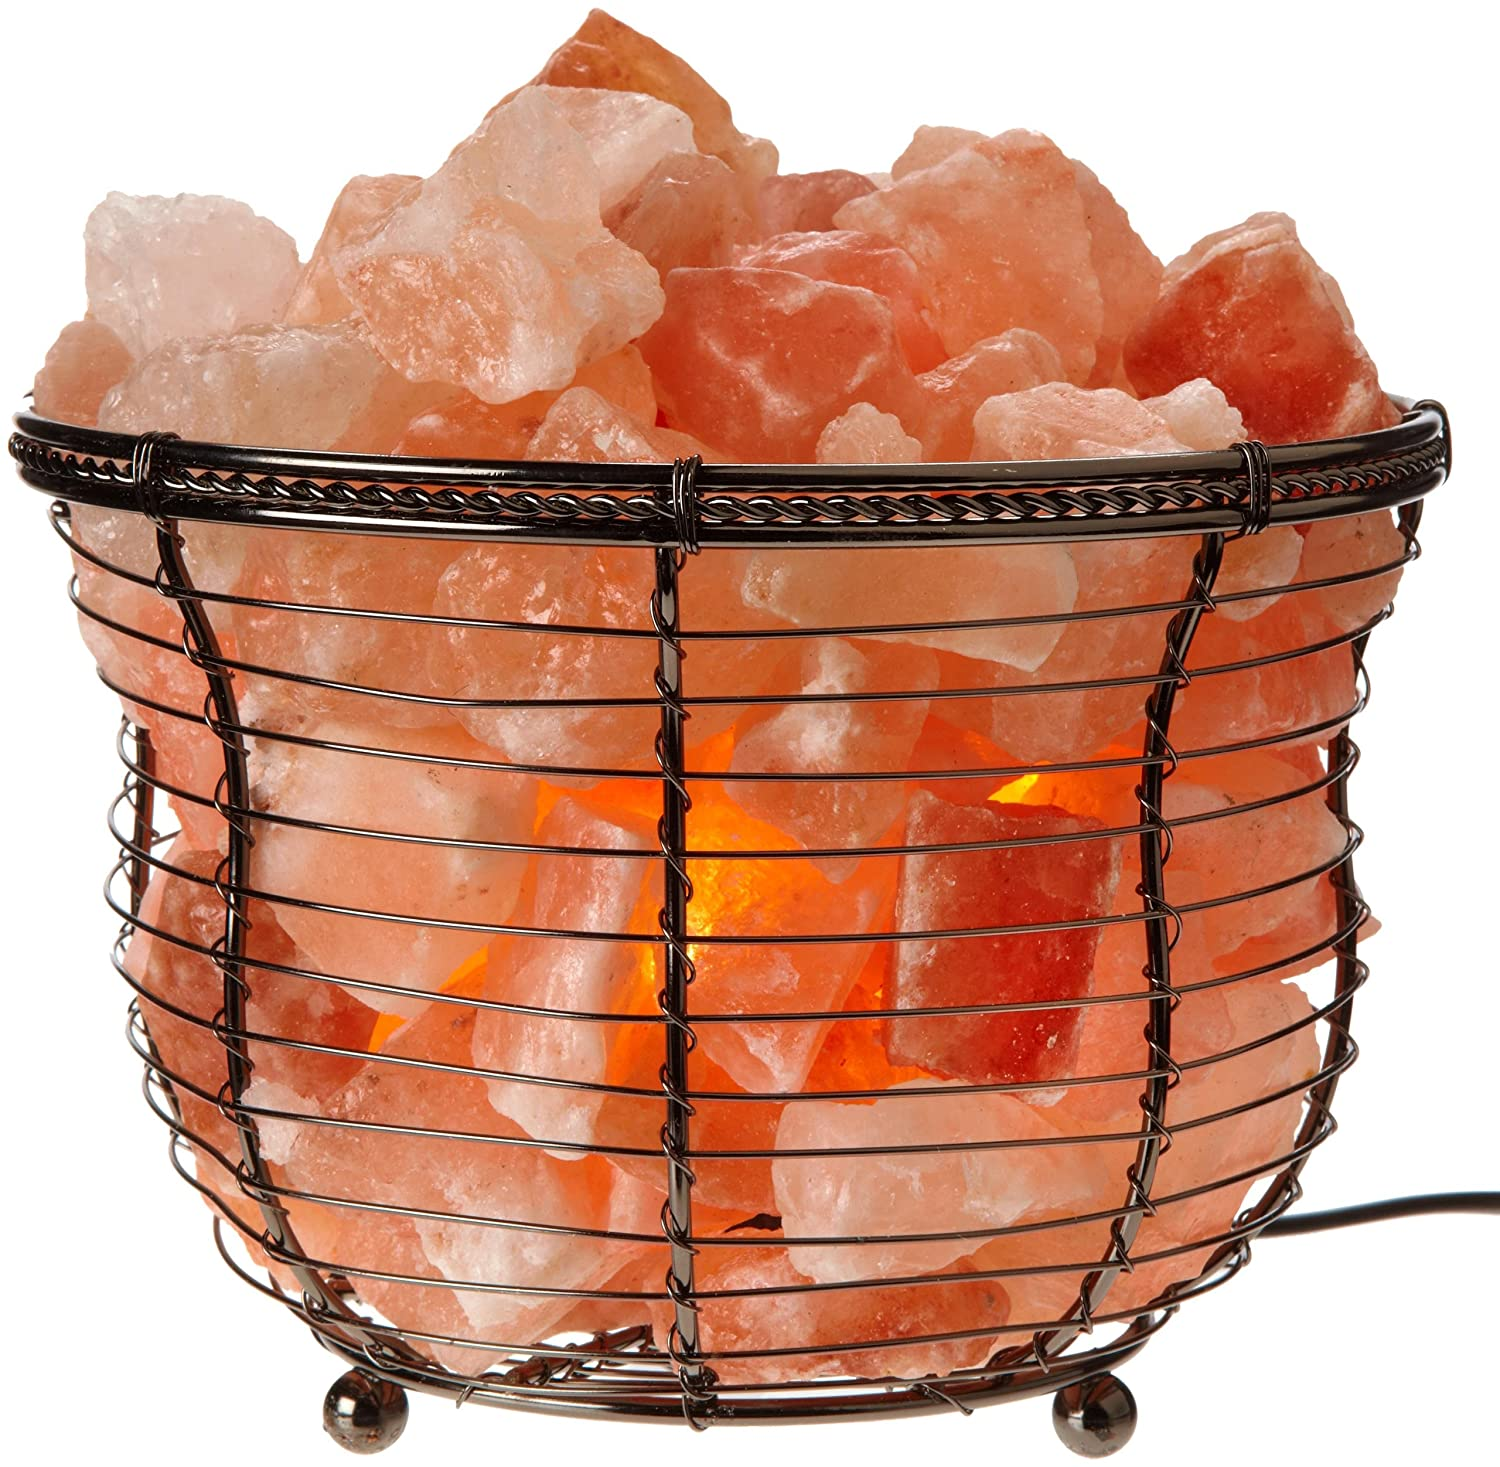 Salt Lamps Negative Energy : Himalayan Salt Lamp